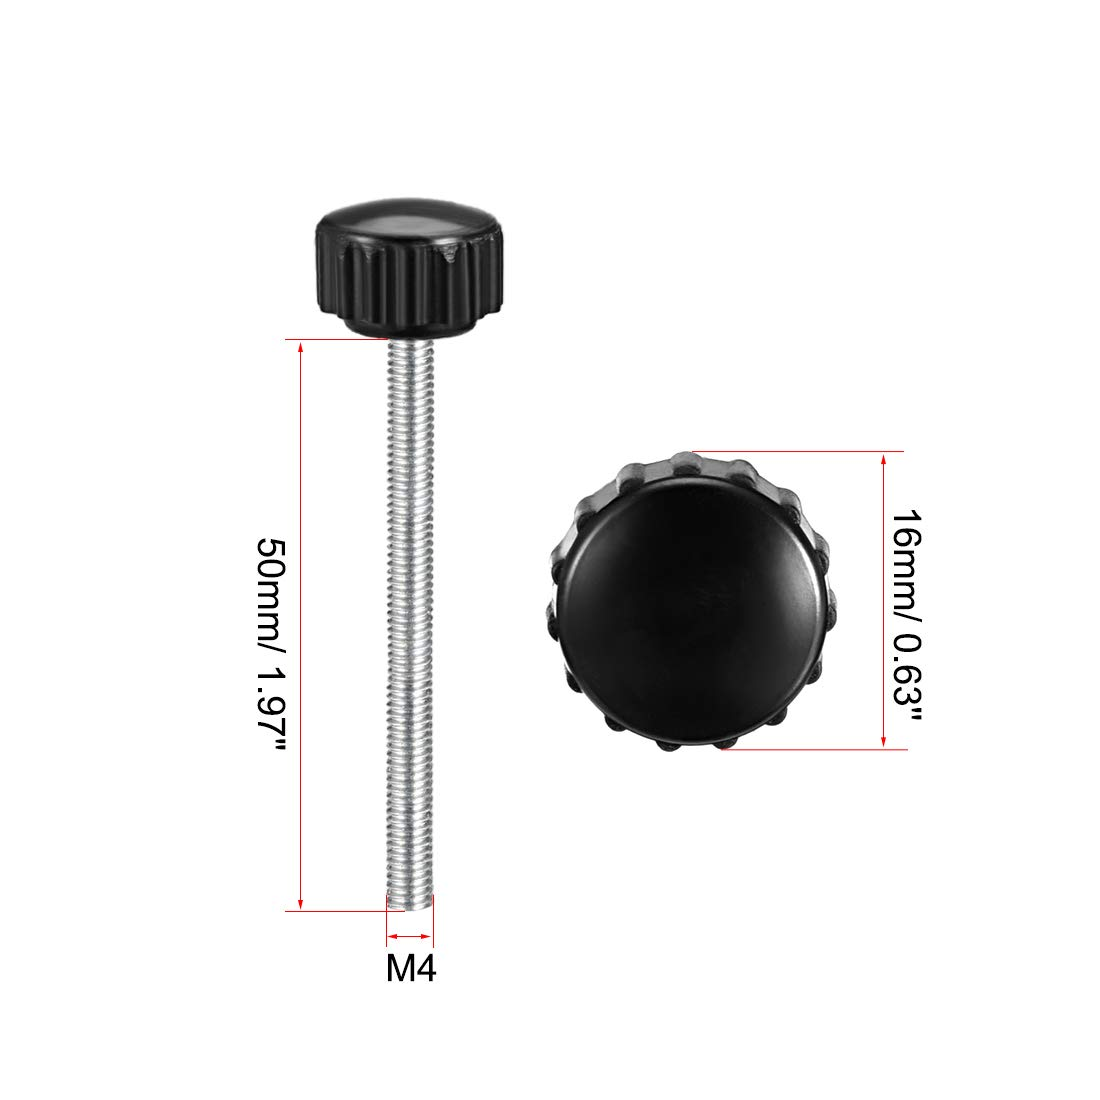 uxcell M5 x 15mm Male Thread Knurled Clamping Knobs Grip Thumb Screw on Type Round Head 10 Pcs